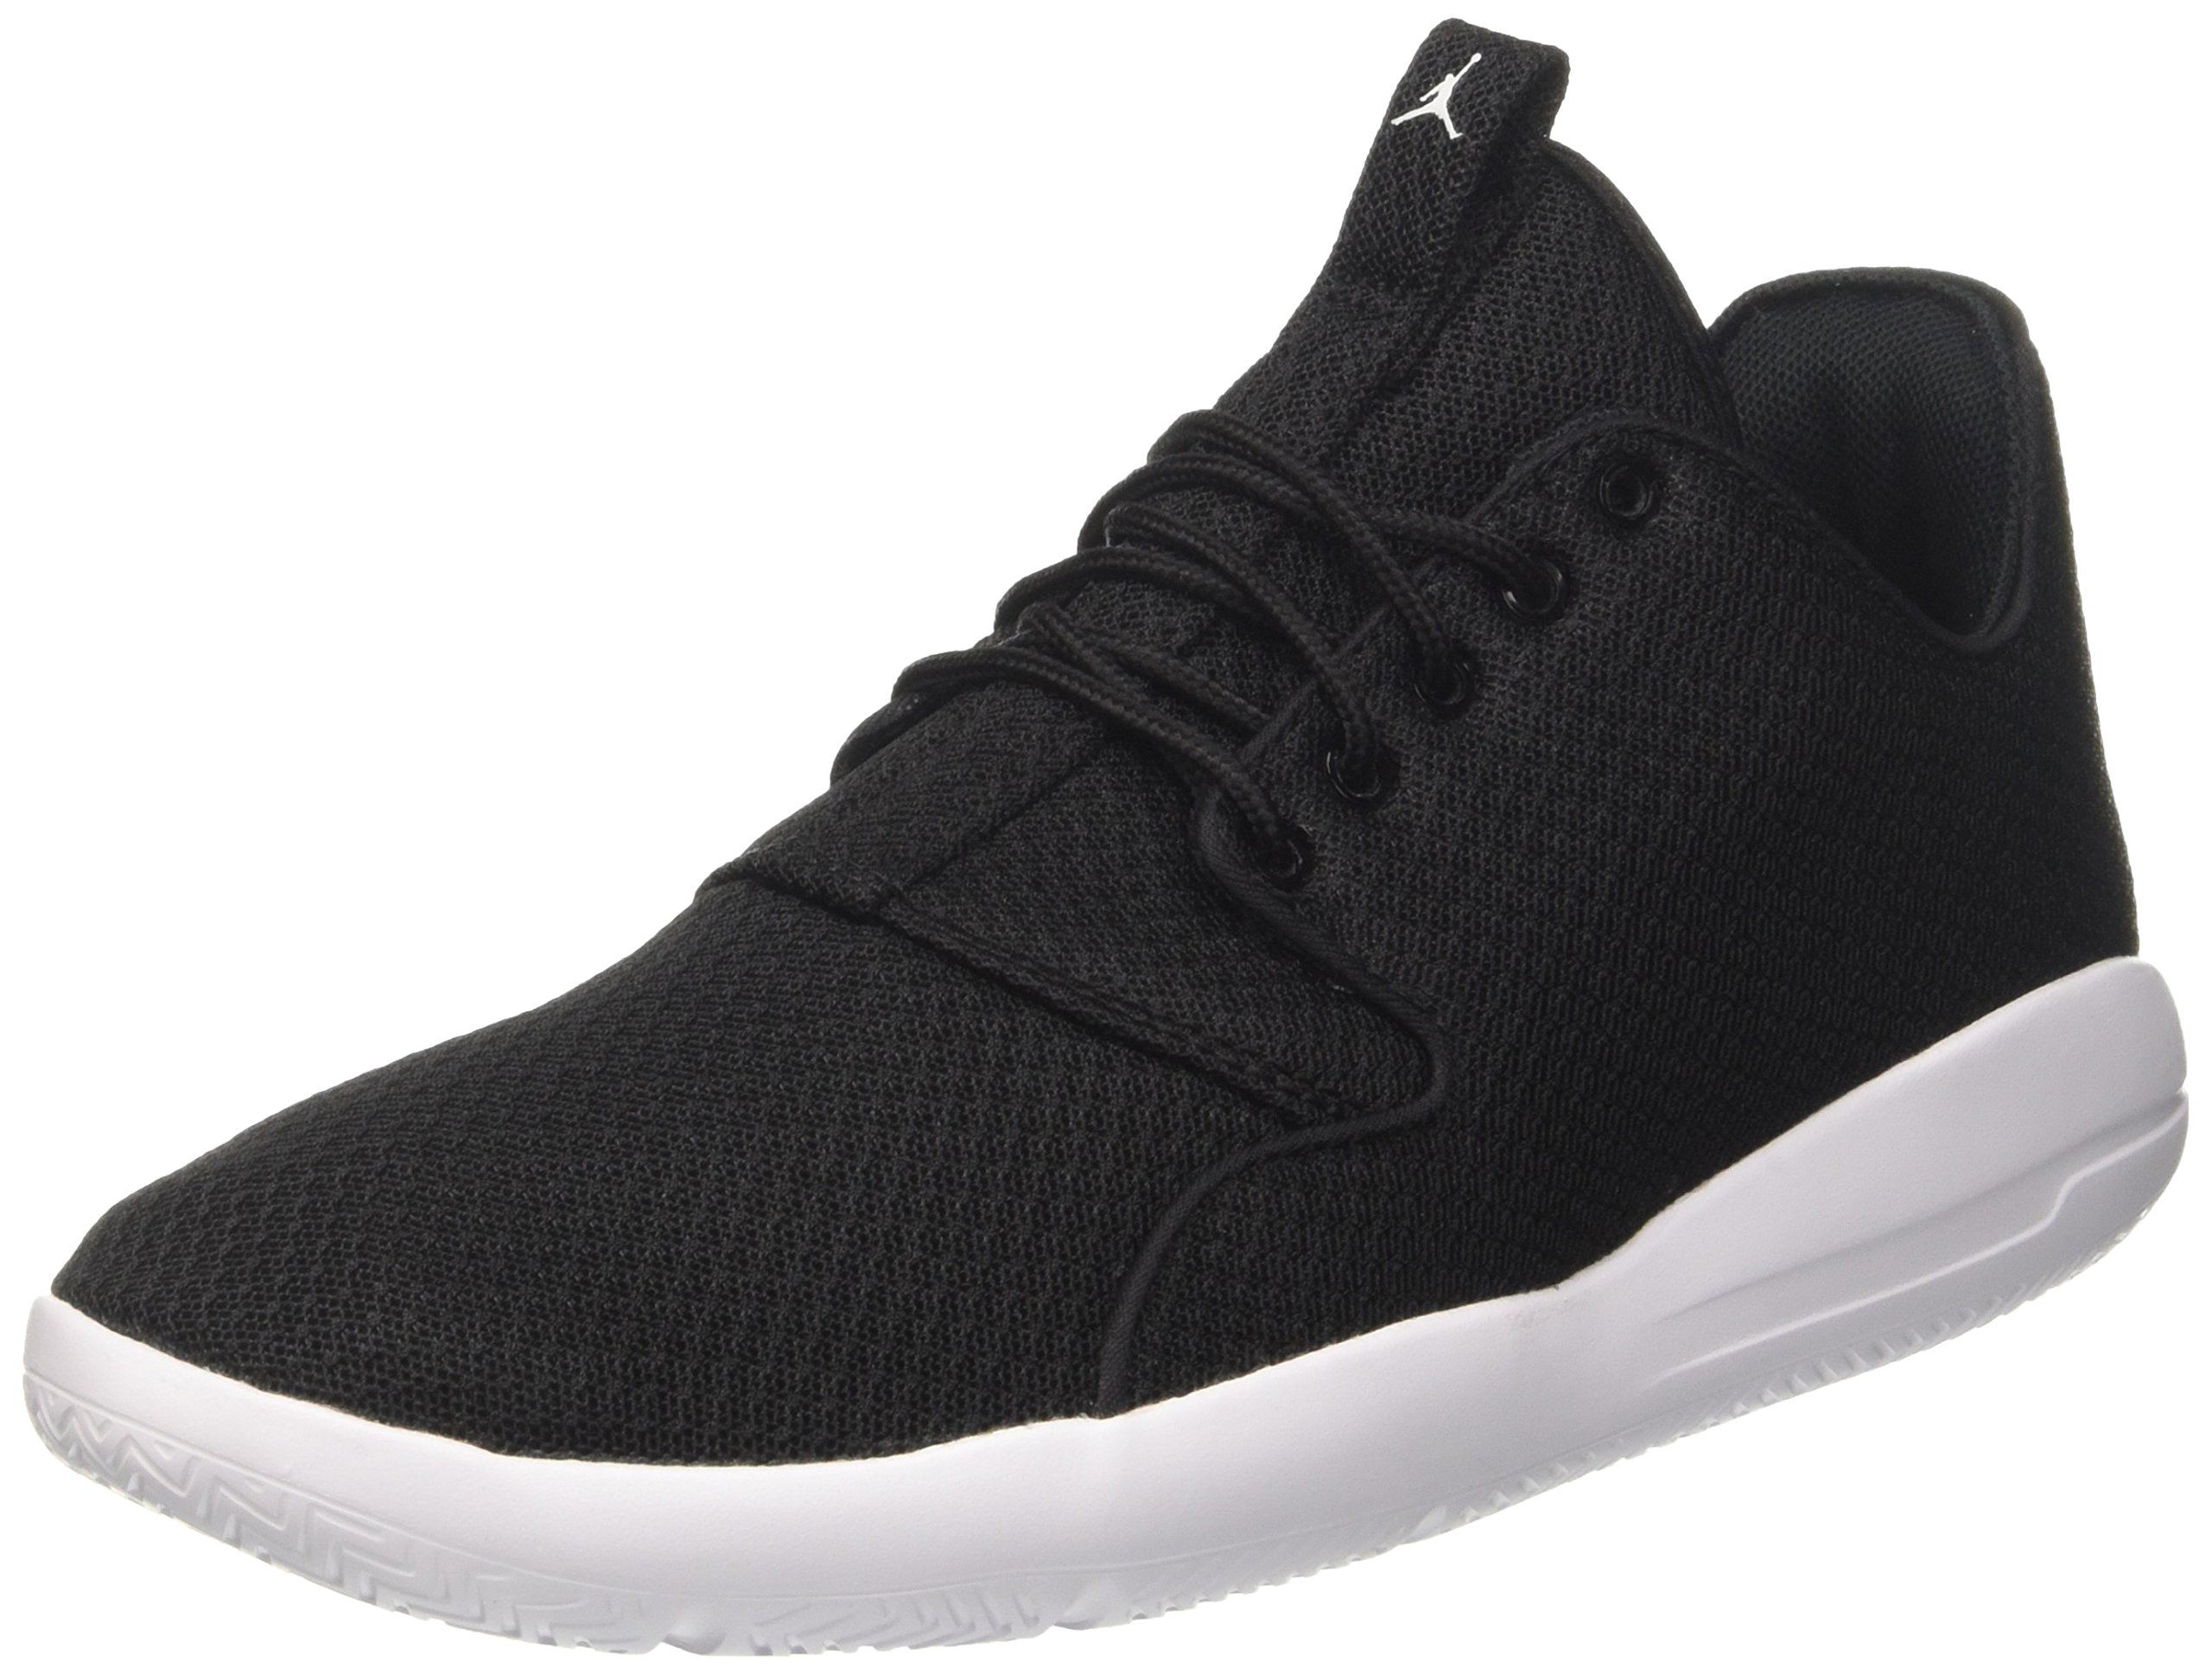 Jordan Men's Eclipse Nike Running Shoes, Black/White by NIKE